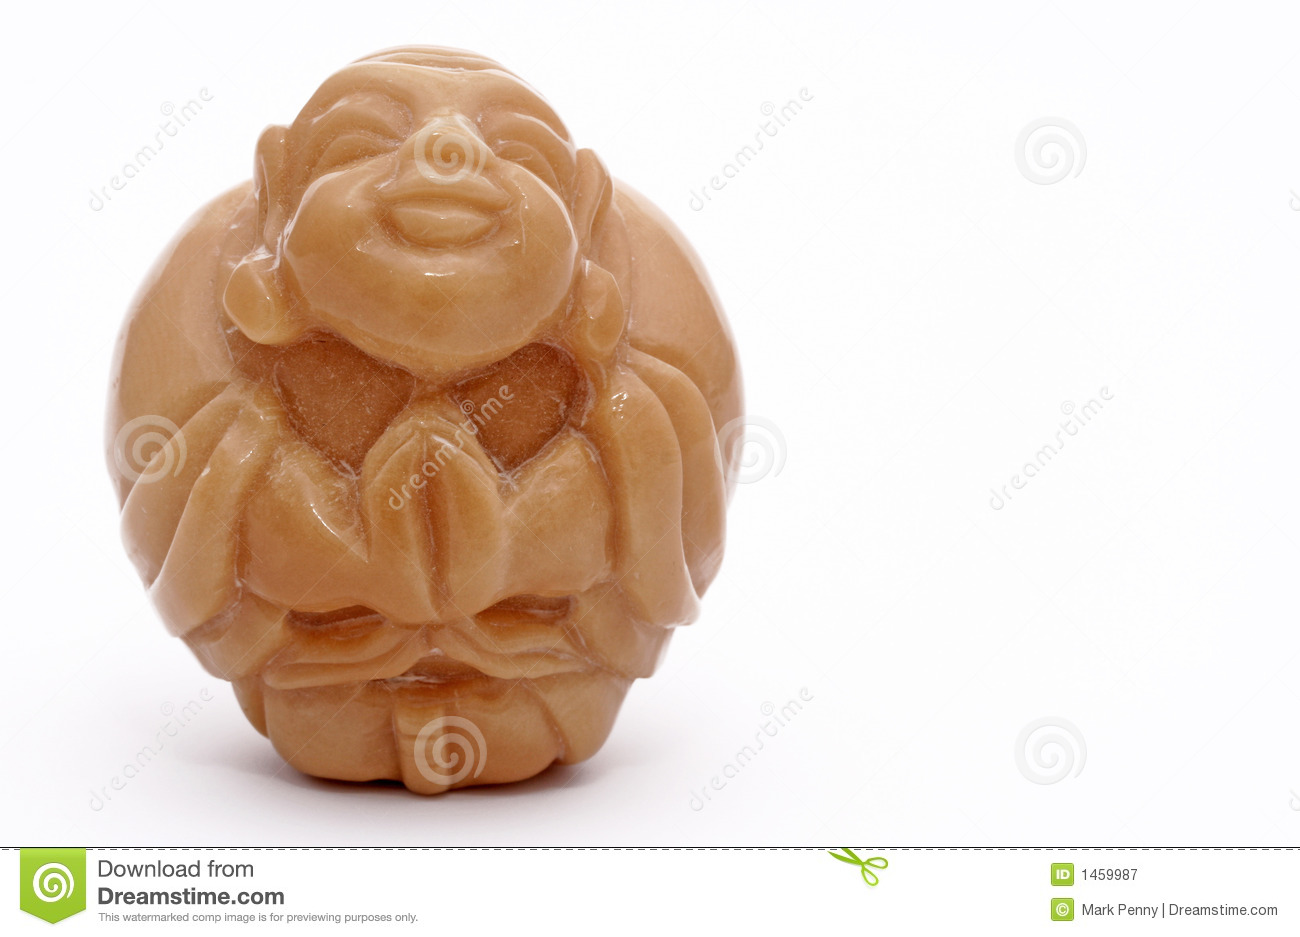 Antique Budda carving